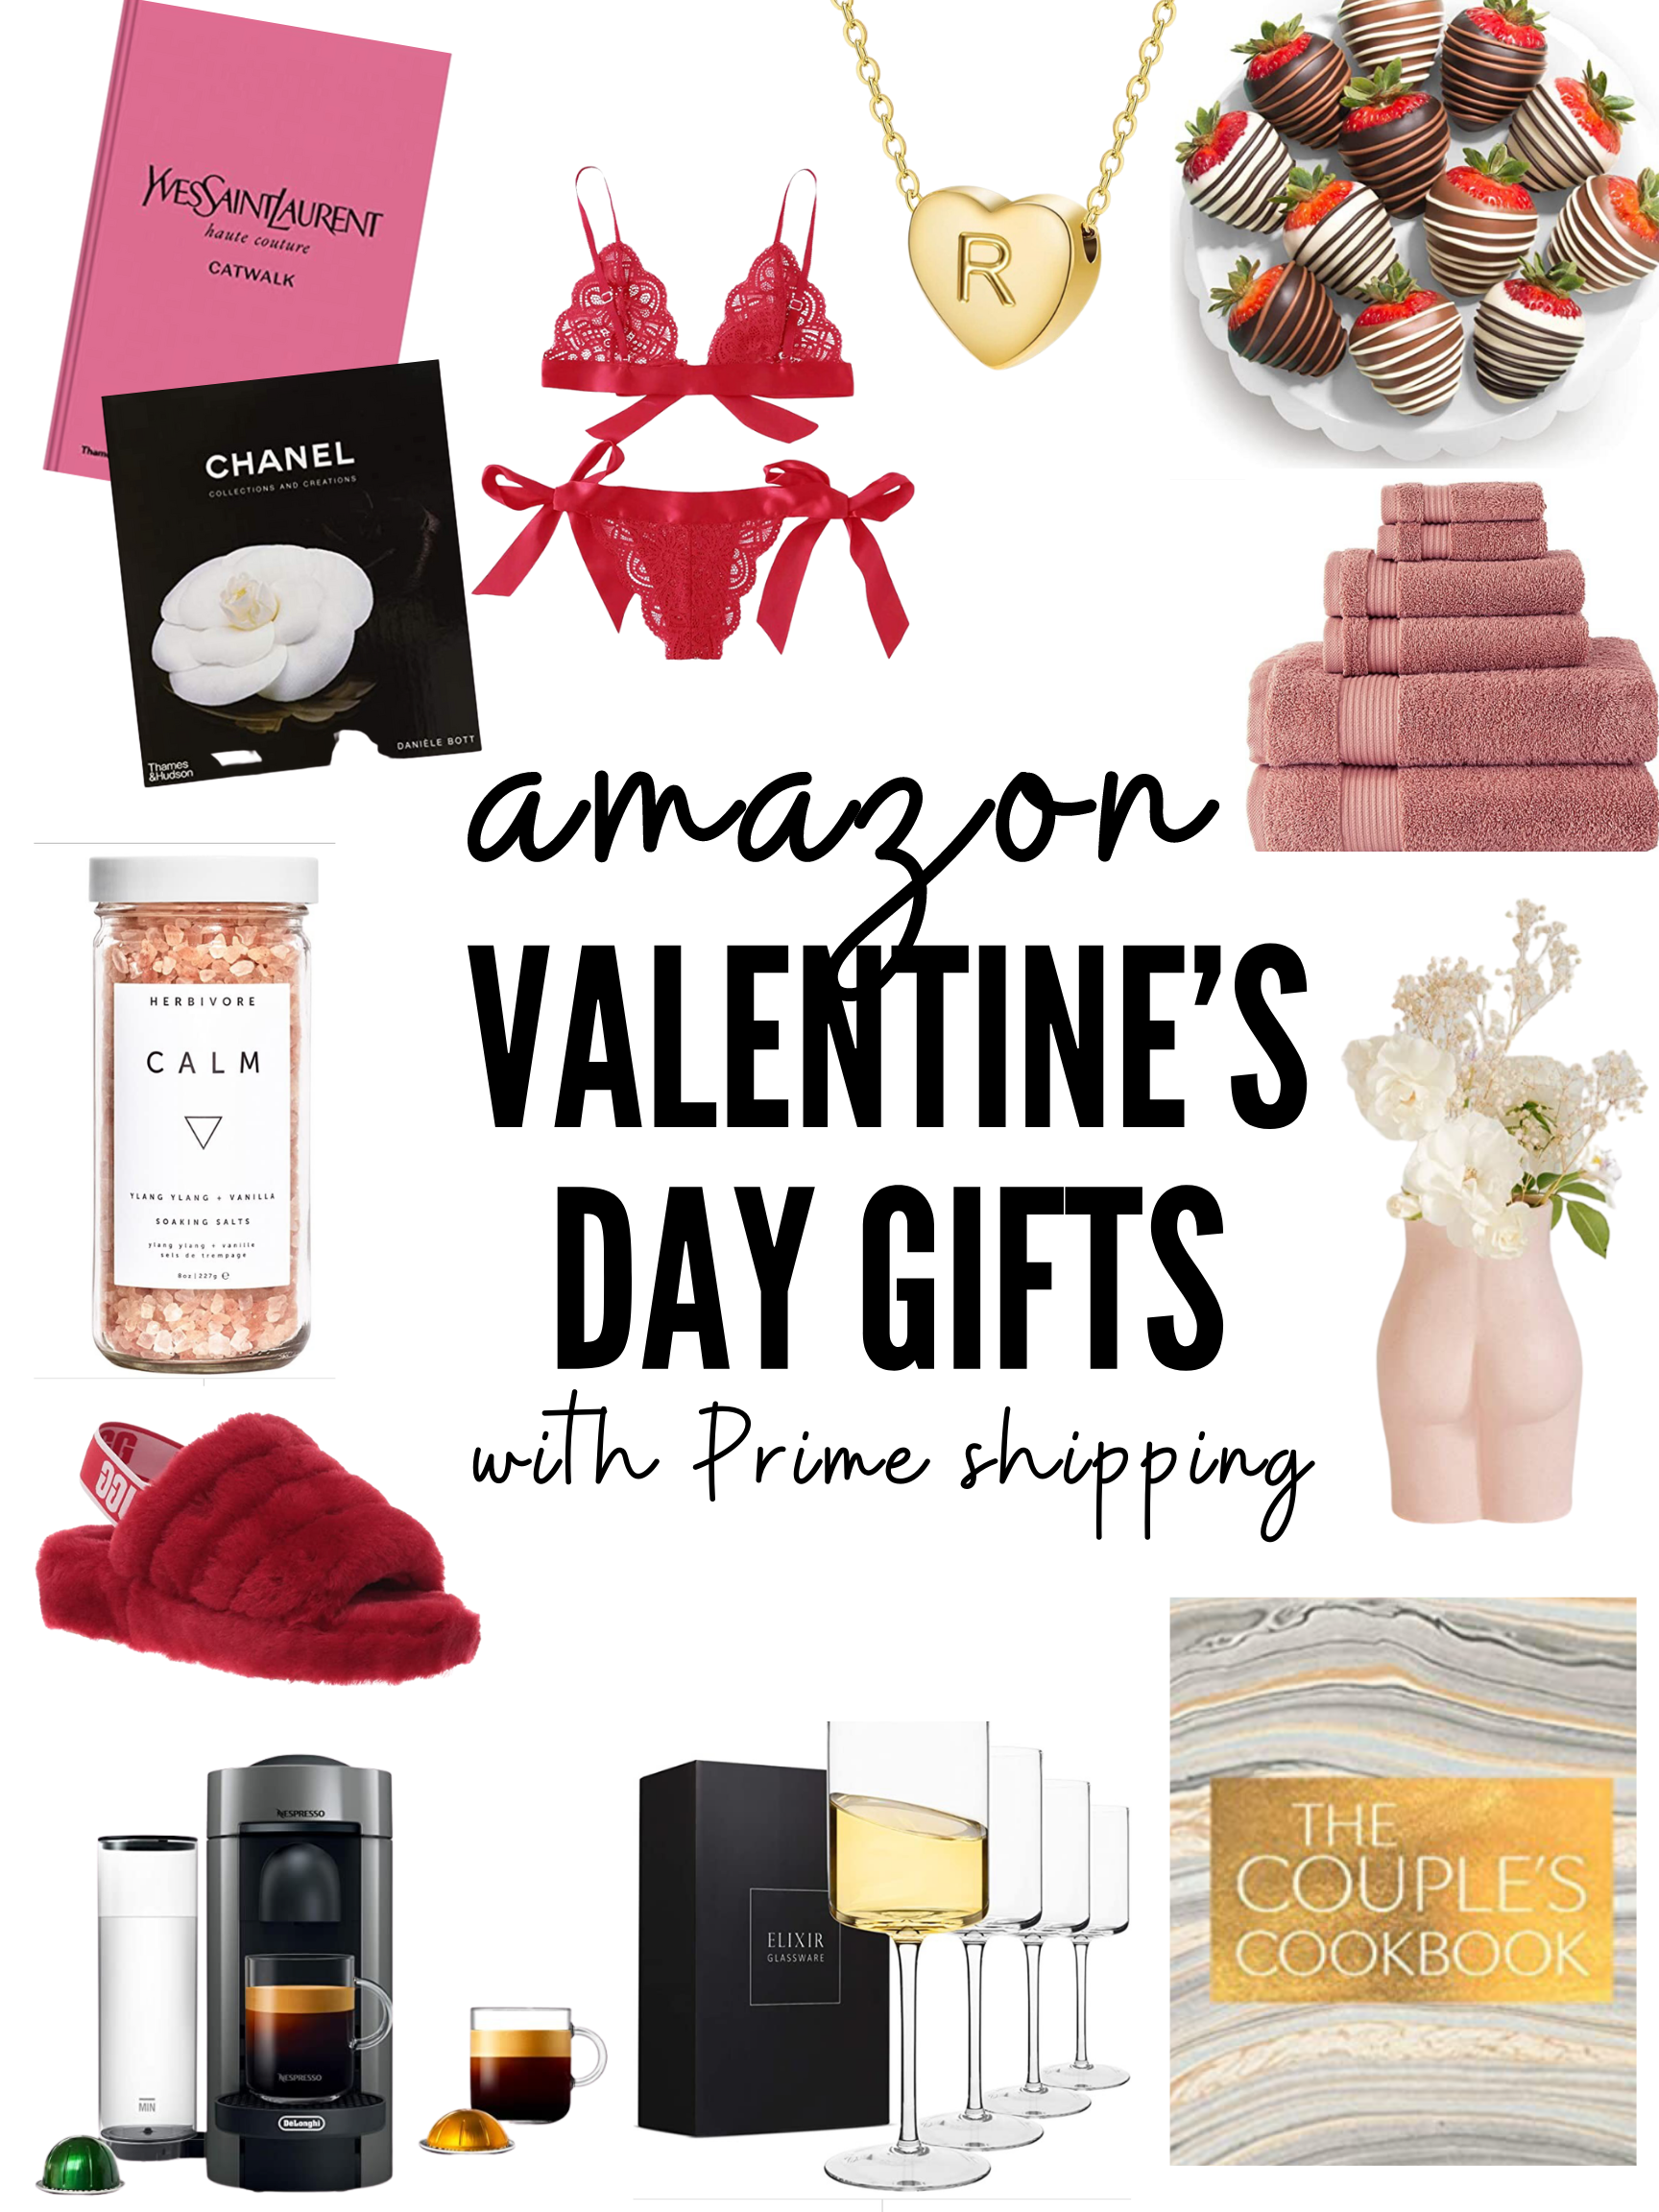 Best Valentines Day Gifts on Amazon Prime